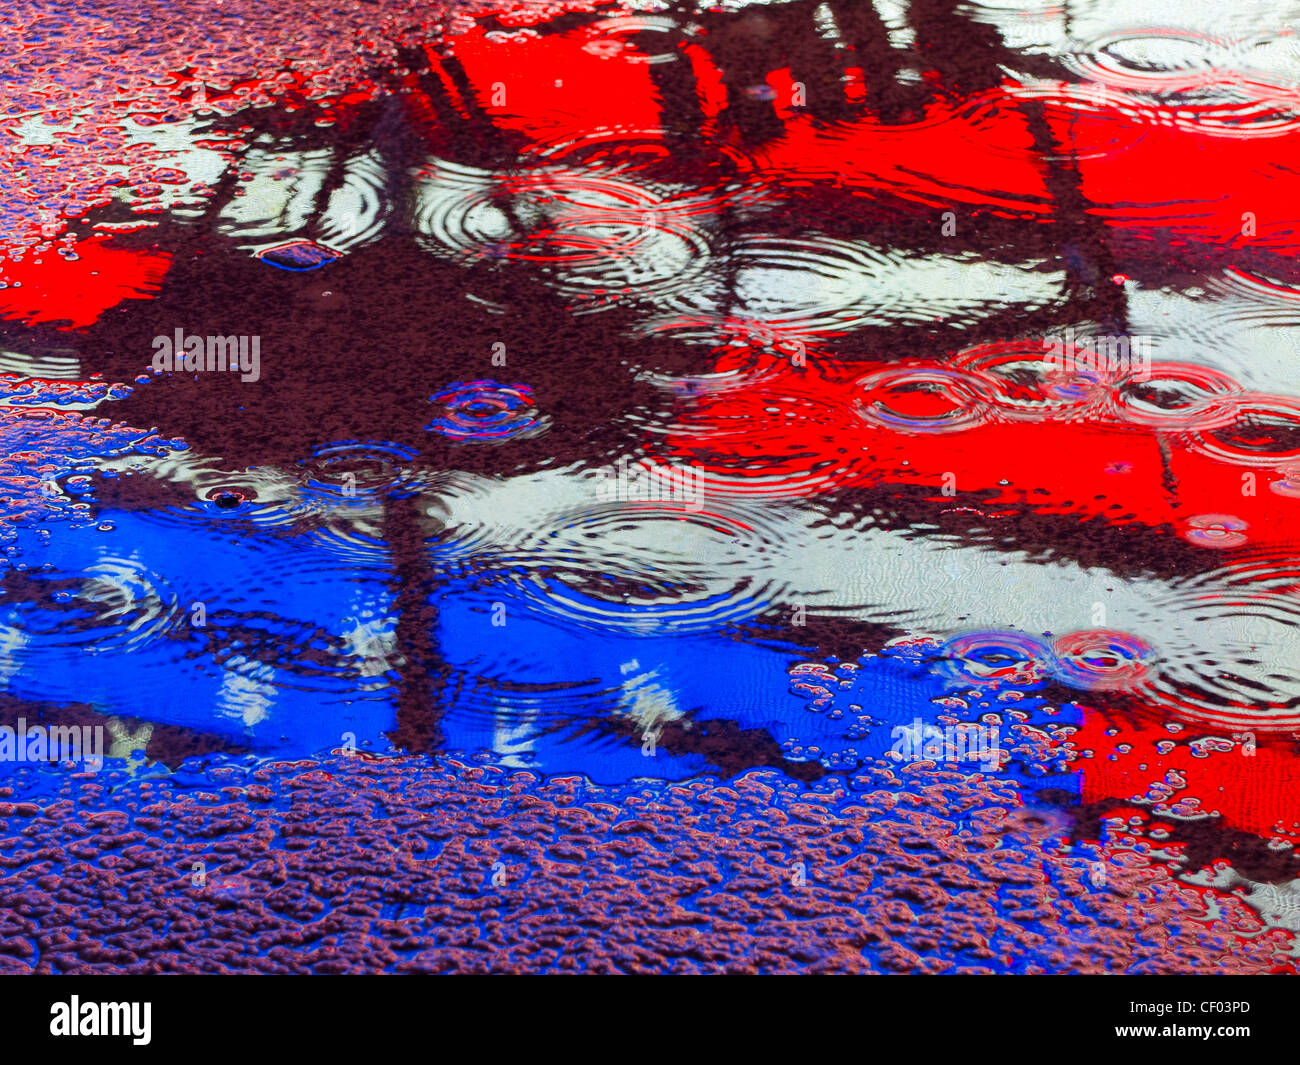 American flag reflection in a puddle - Stock Image